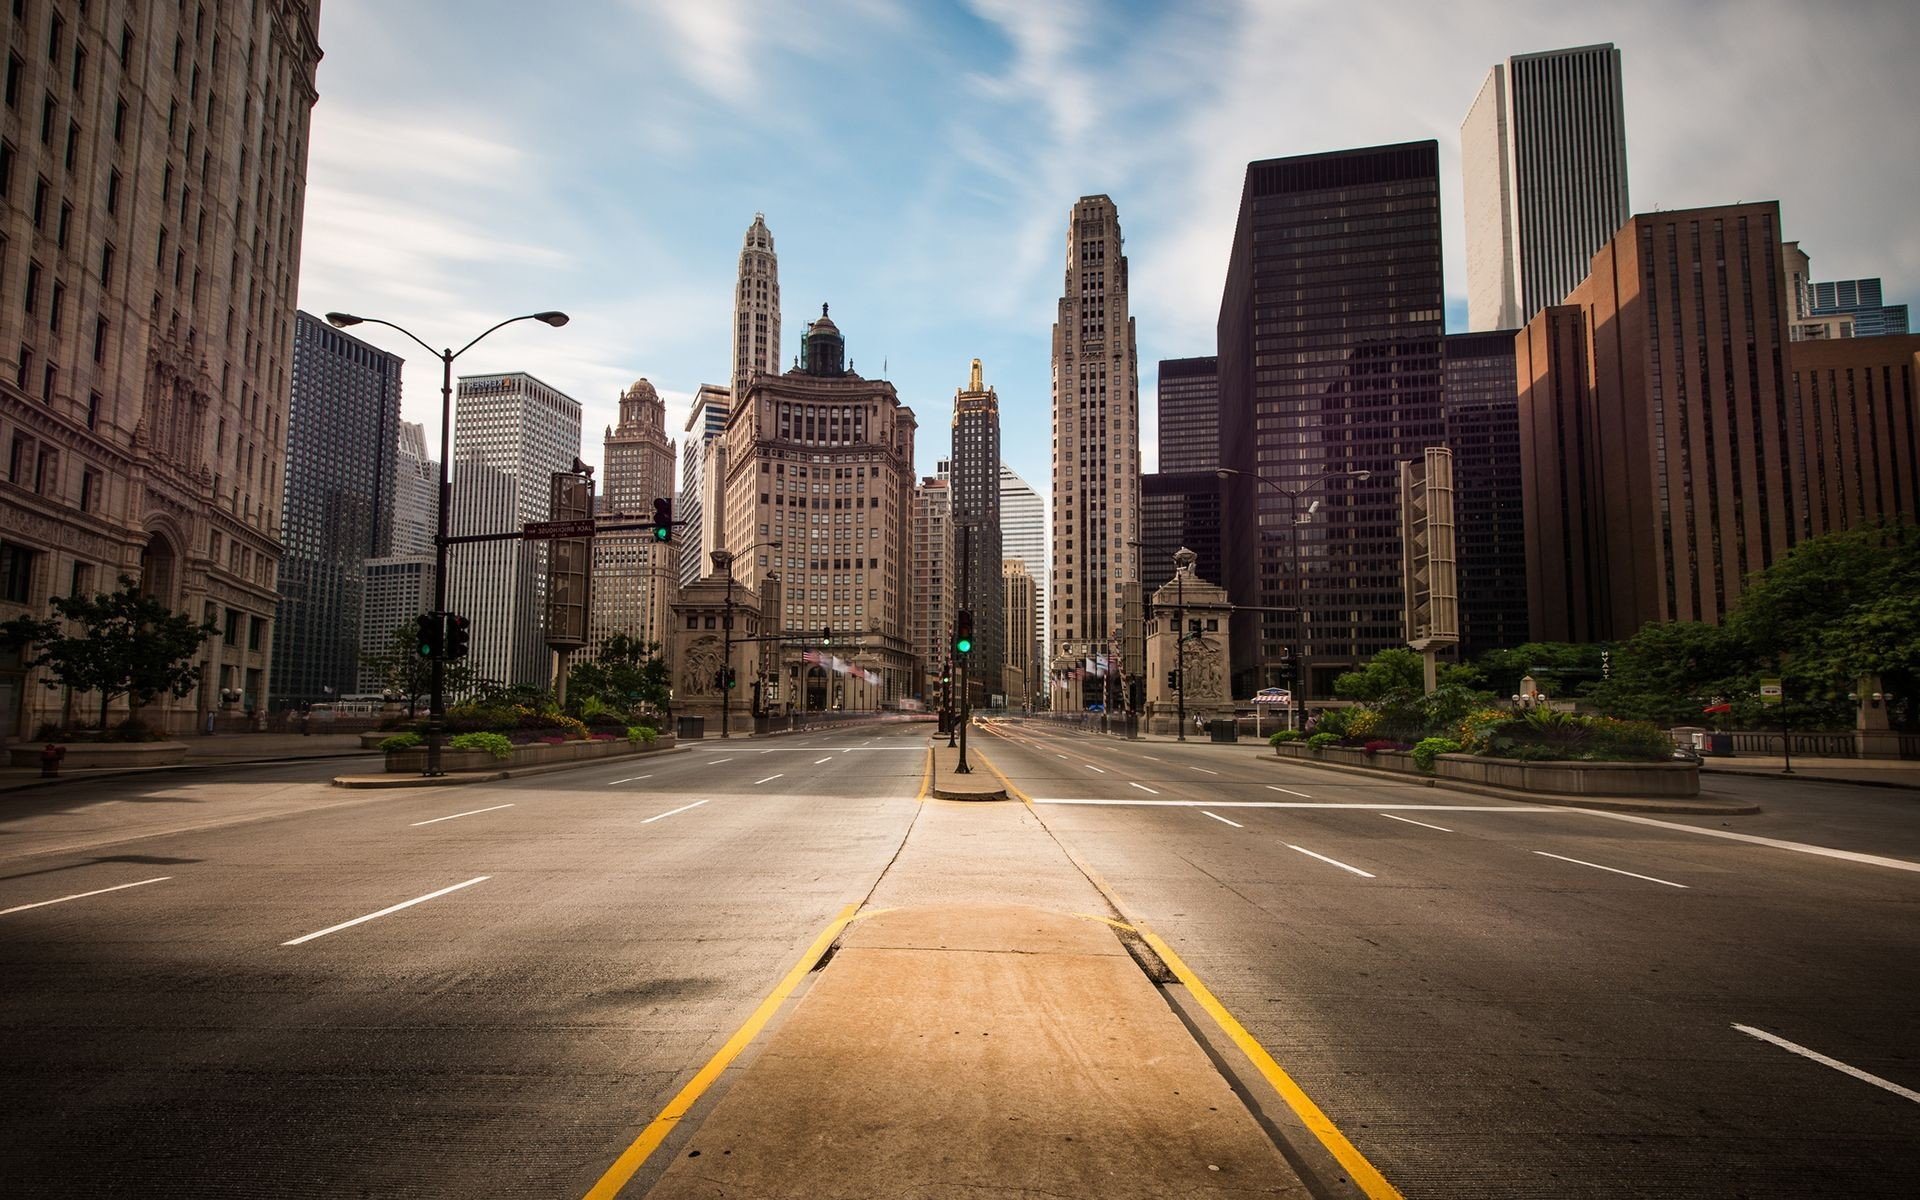 empty-new-york-city-street-wallpaper-1.jpg (1920×1200) | Downtown Buildings  with Great Silhouettes | Pinterest | City streets, Chicago skyline and  Chicago